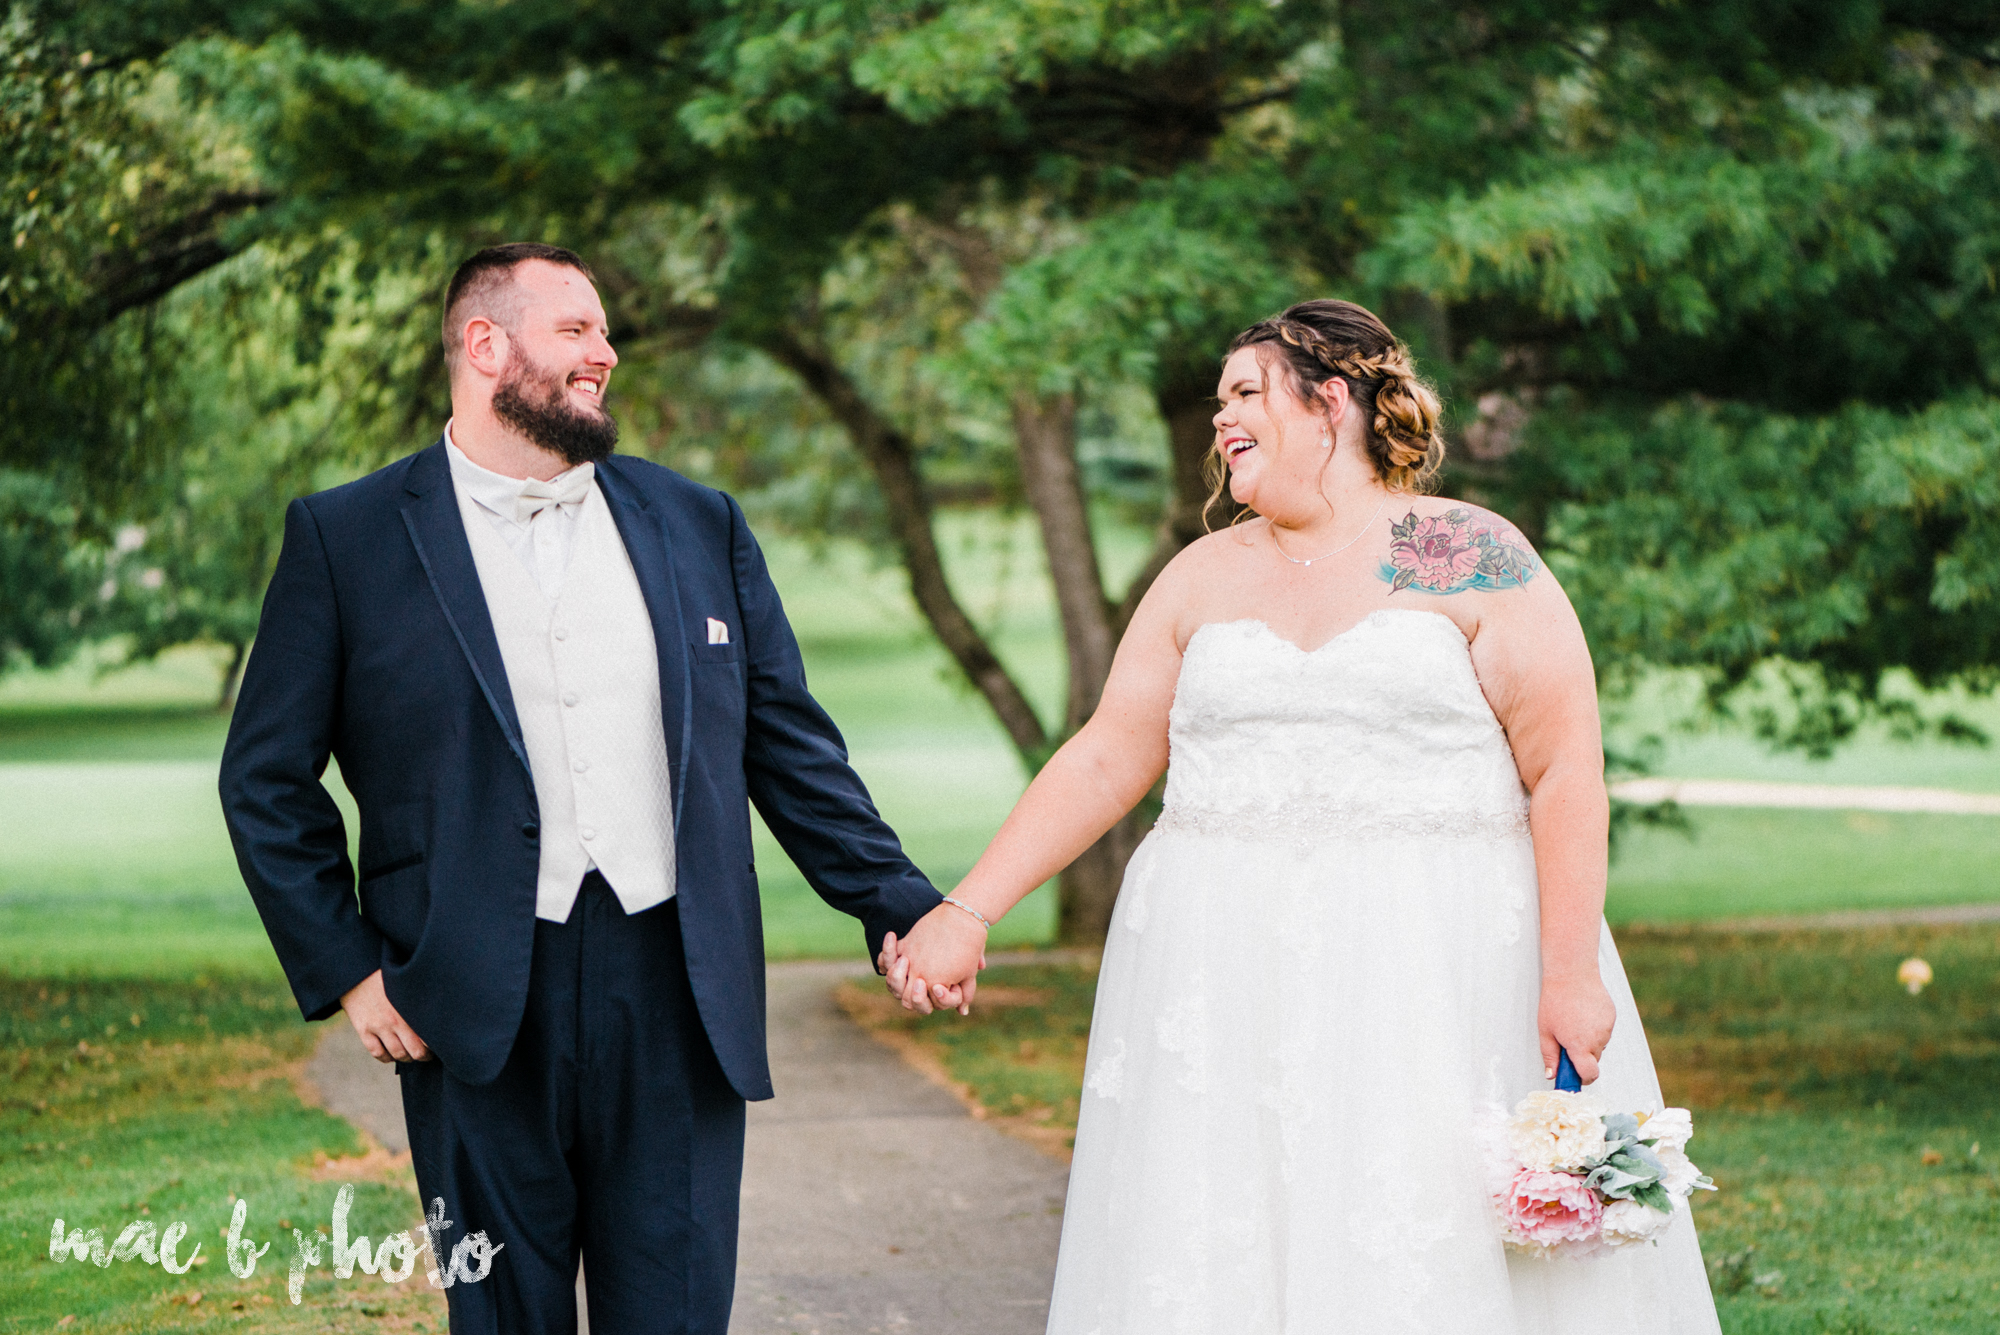 Kristina and ryan's personal vintage glam fall wedding at disalvo's station restaurant and the arnold palmer latrobe country club in latrobe, pa photographed by youngstown wedding photographer mae b photo-40.jpg